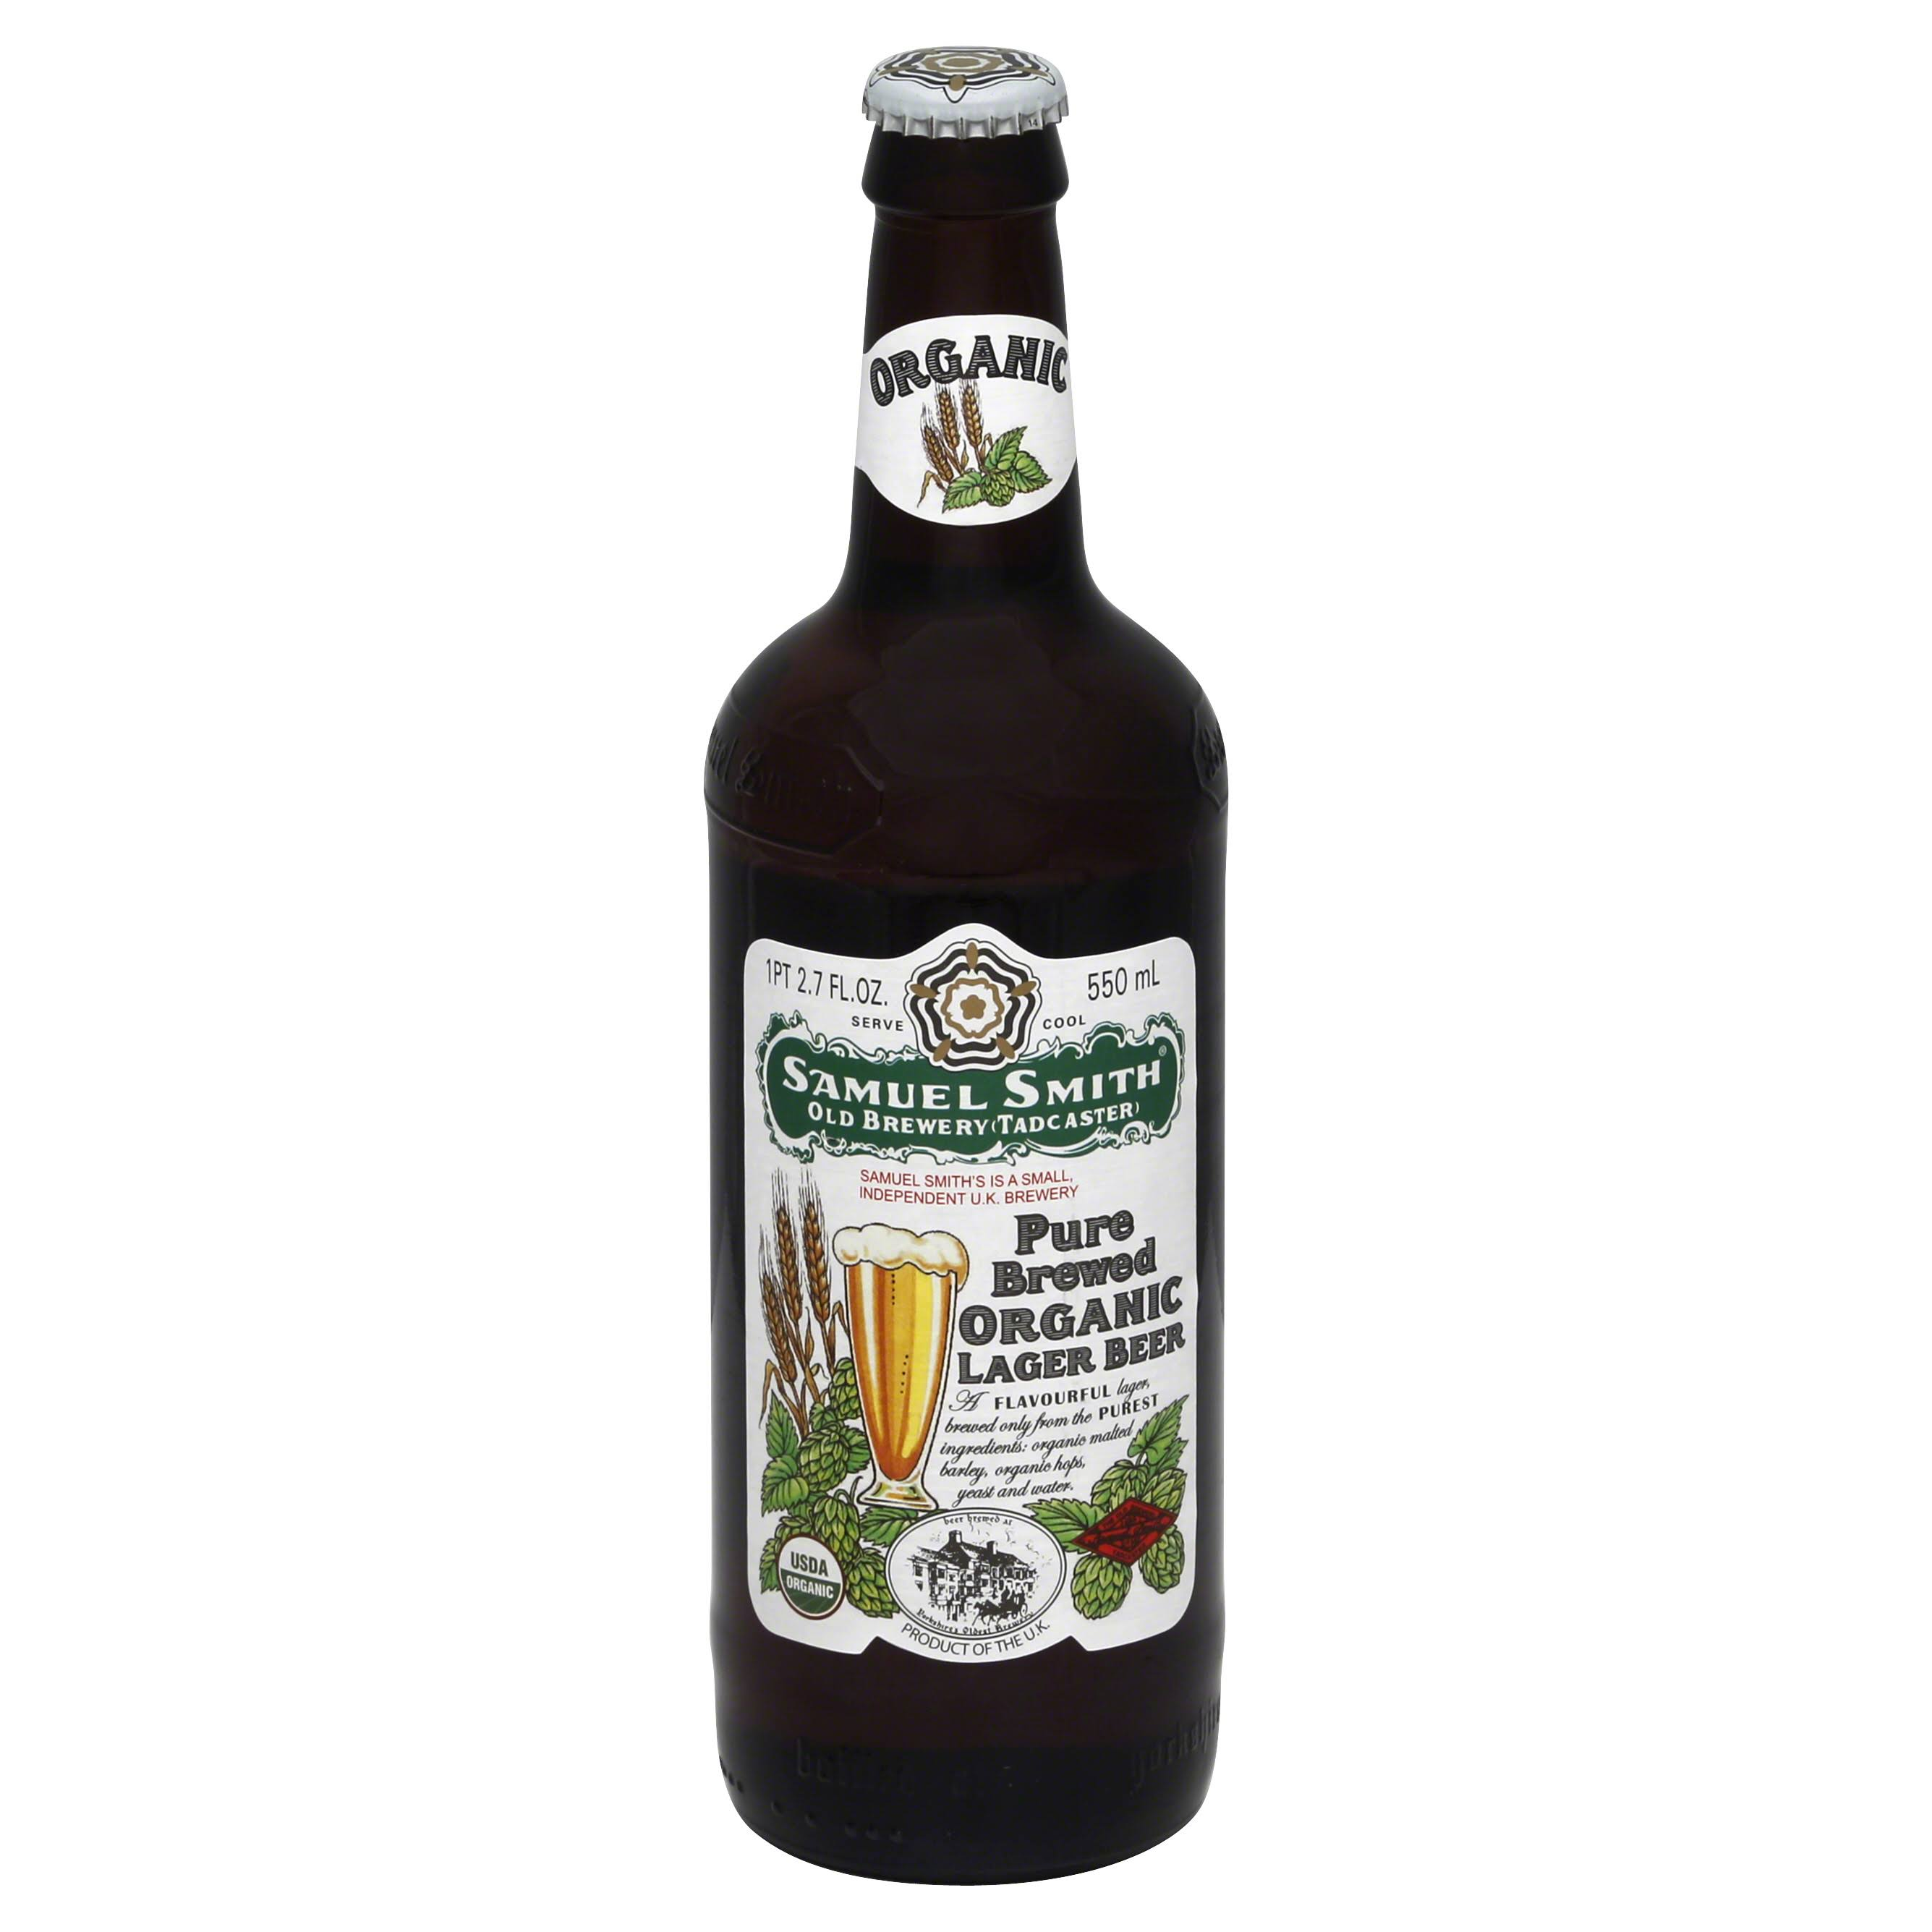 Samuel Smith Lager Beer, Organic, Pure Brewed - 18.7 fl oz